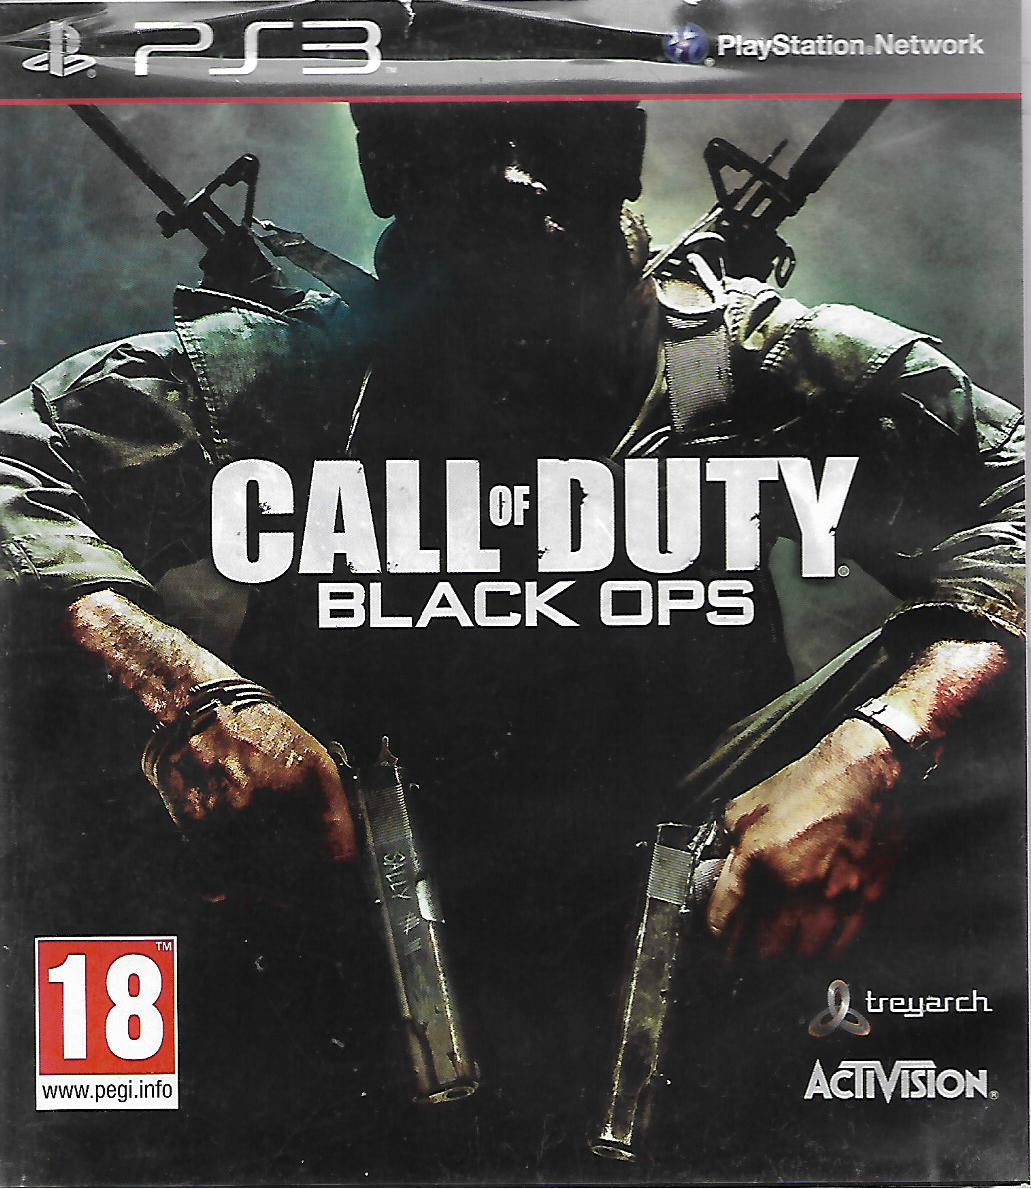 CALL OF DUTY - BLACK OPS (PS3 - bazar)